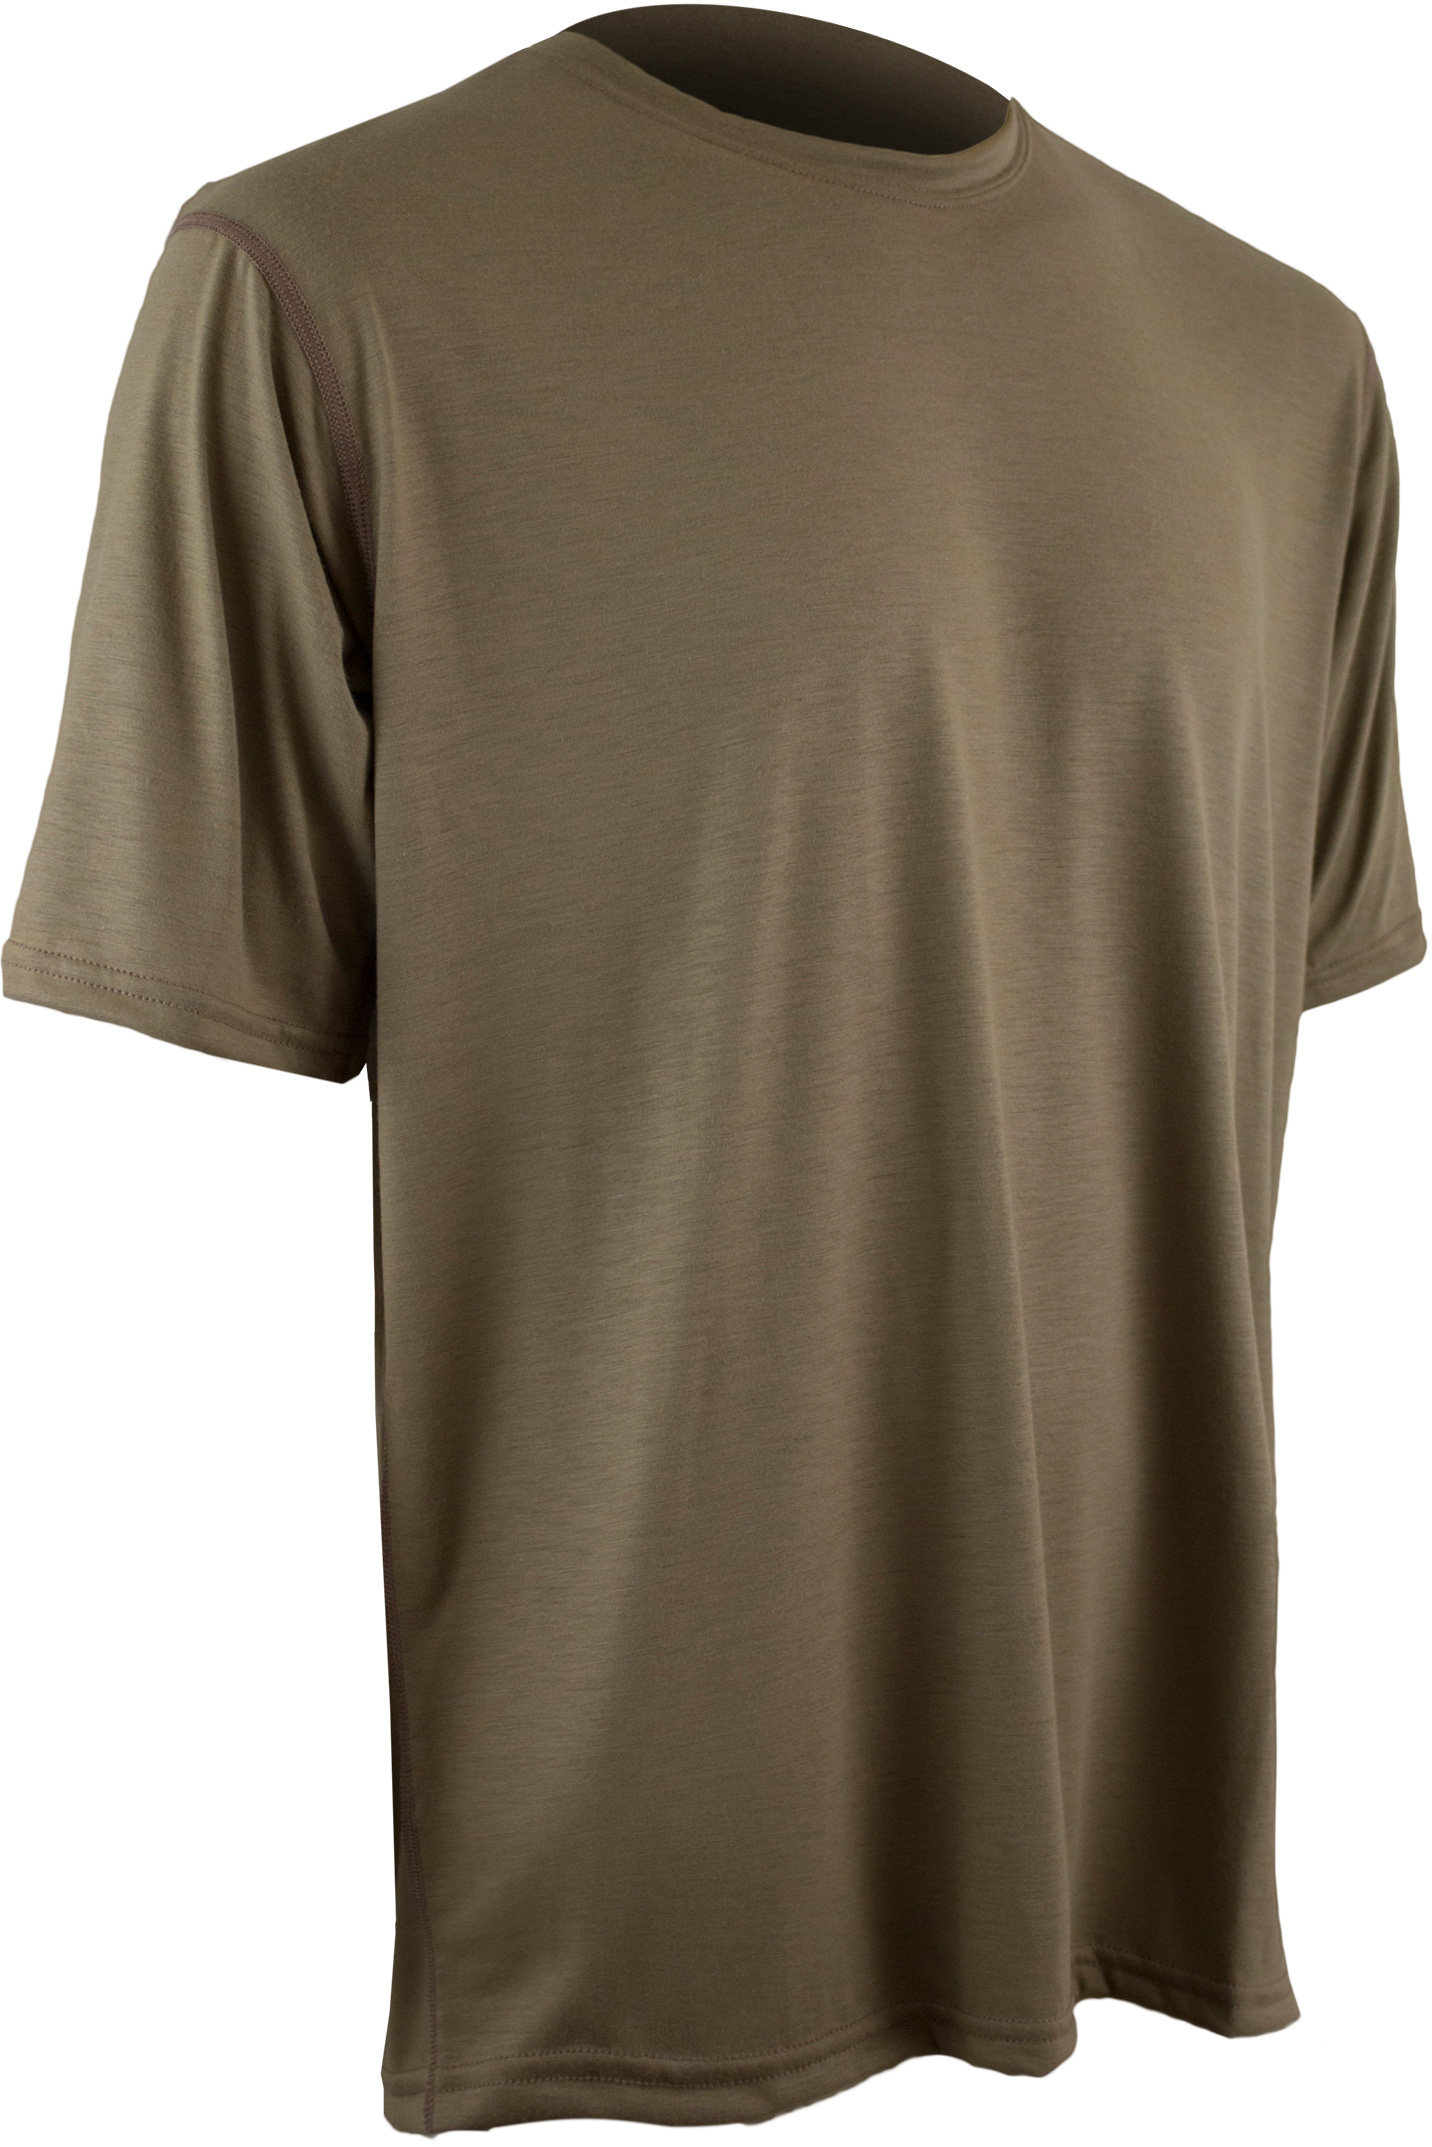 b2a09ef1 XGO Phase 1 FR Relaxed Fit T-Shirt | Up to 30% Off Free Shipping over $49!